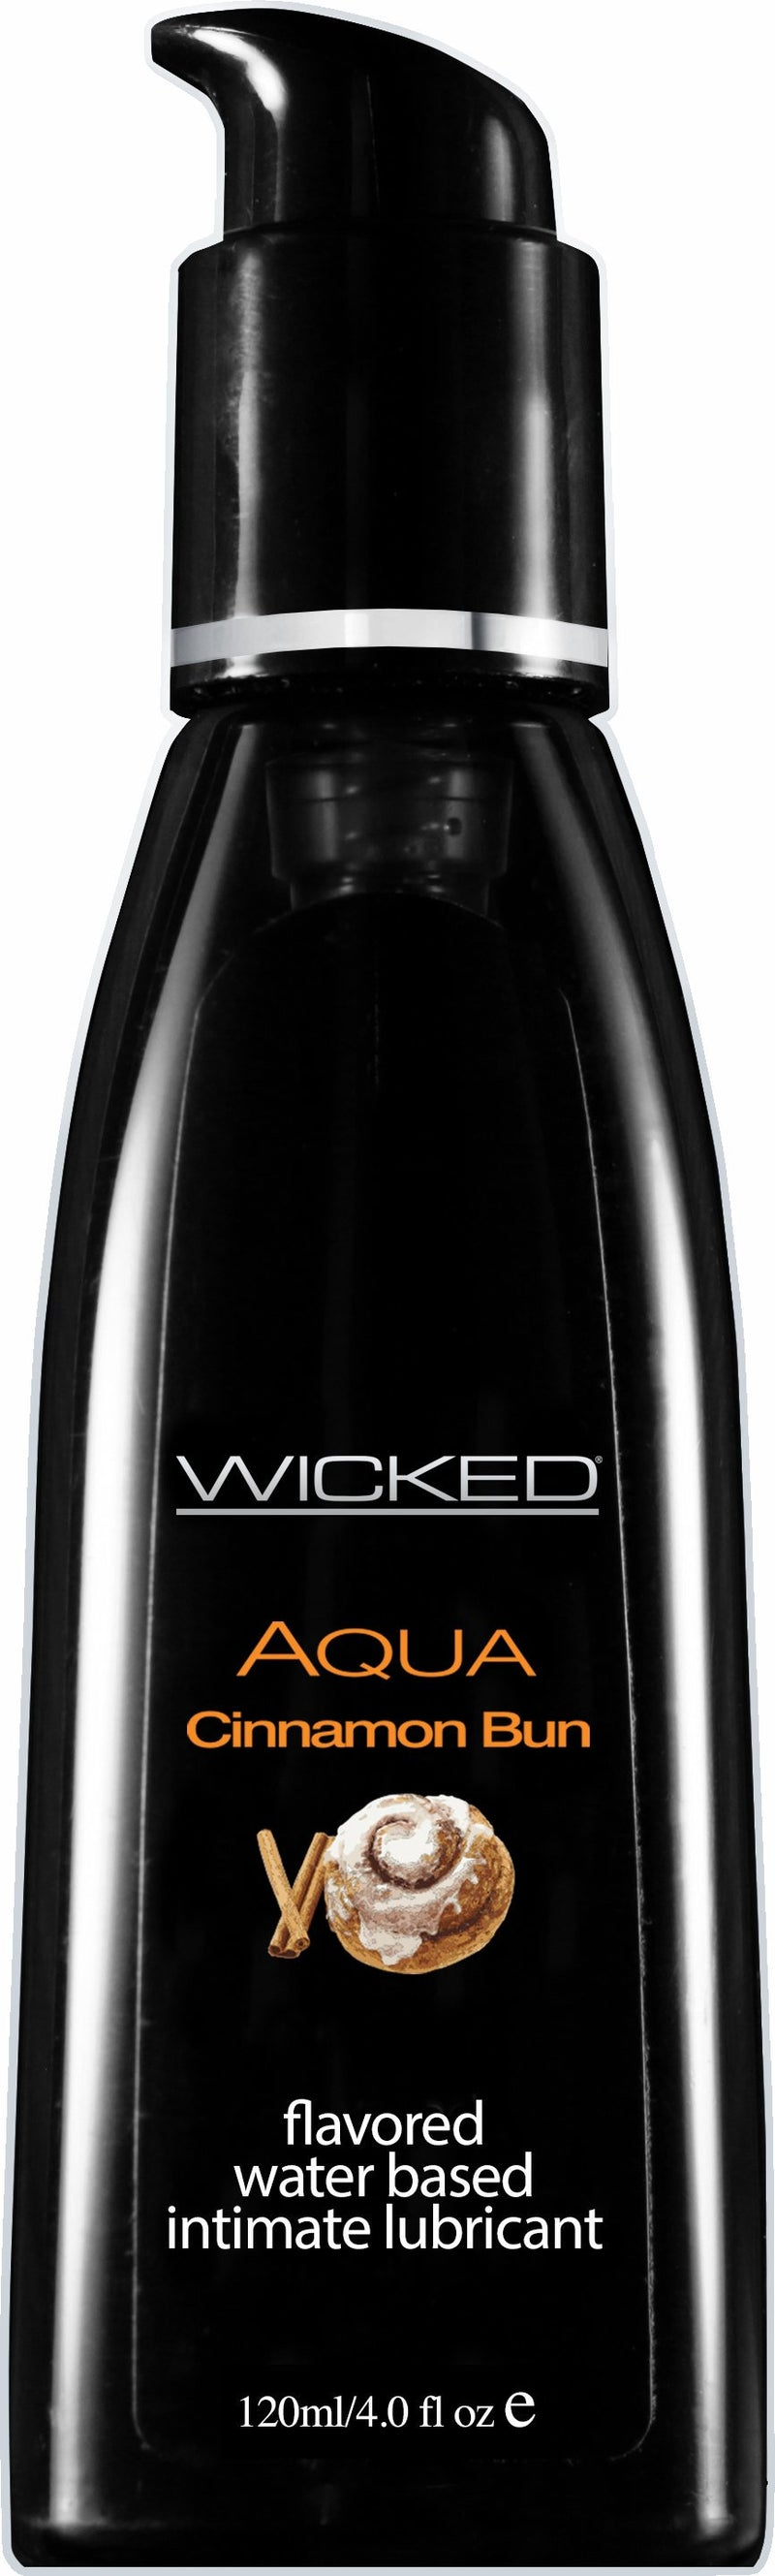 Wicked Aqua Cinnamon Bun 4 oz Flavored Water-Based Intimate Lubricant